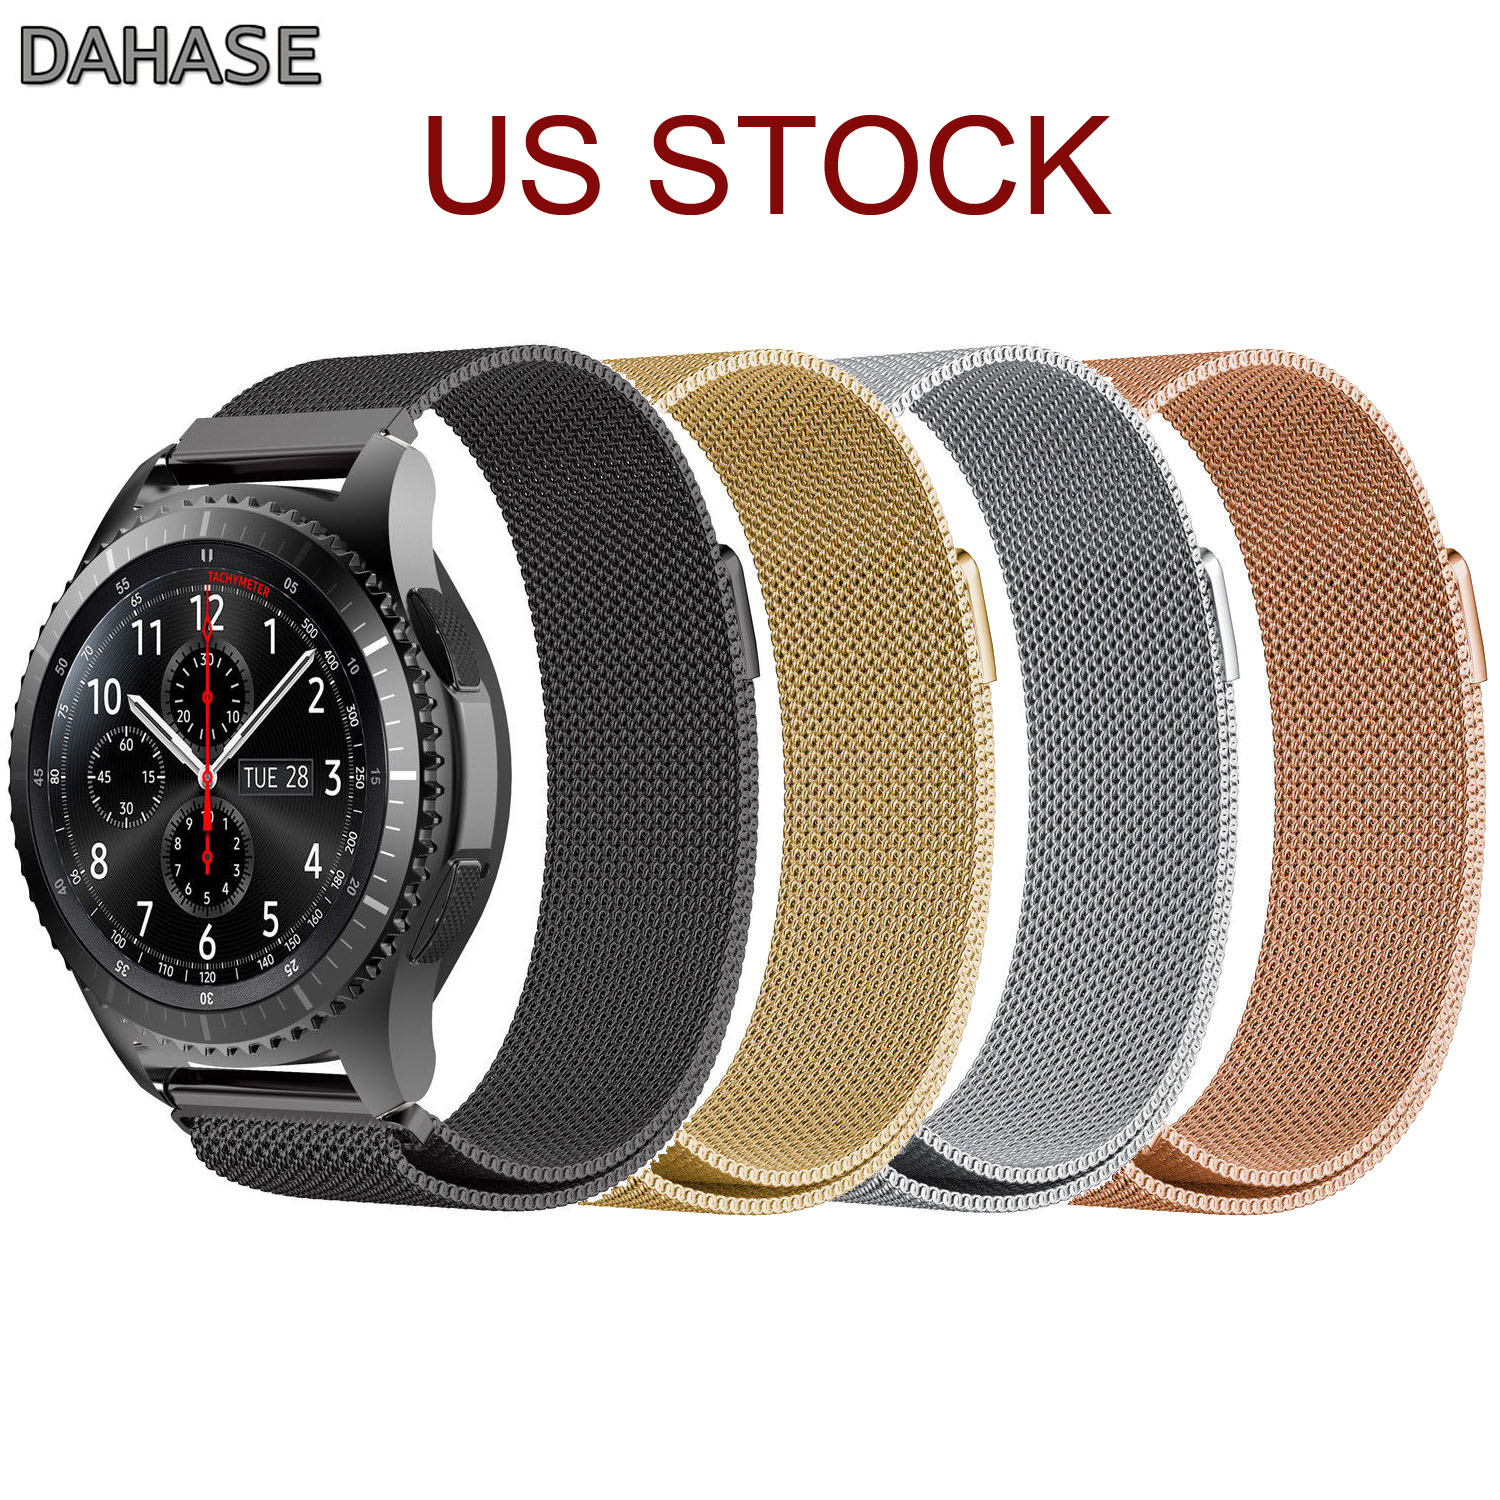 Magnetic Closure Bracelet for Gear S3 Classic Milanese Loop Strap for Samsung Gear S3 Frontier Stainless Steel Watch Band 22mm crested sport silicone strap for samsung gear s3 classic frontier replacement rubber band watch strap for samsung gear s3